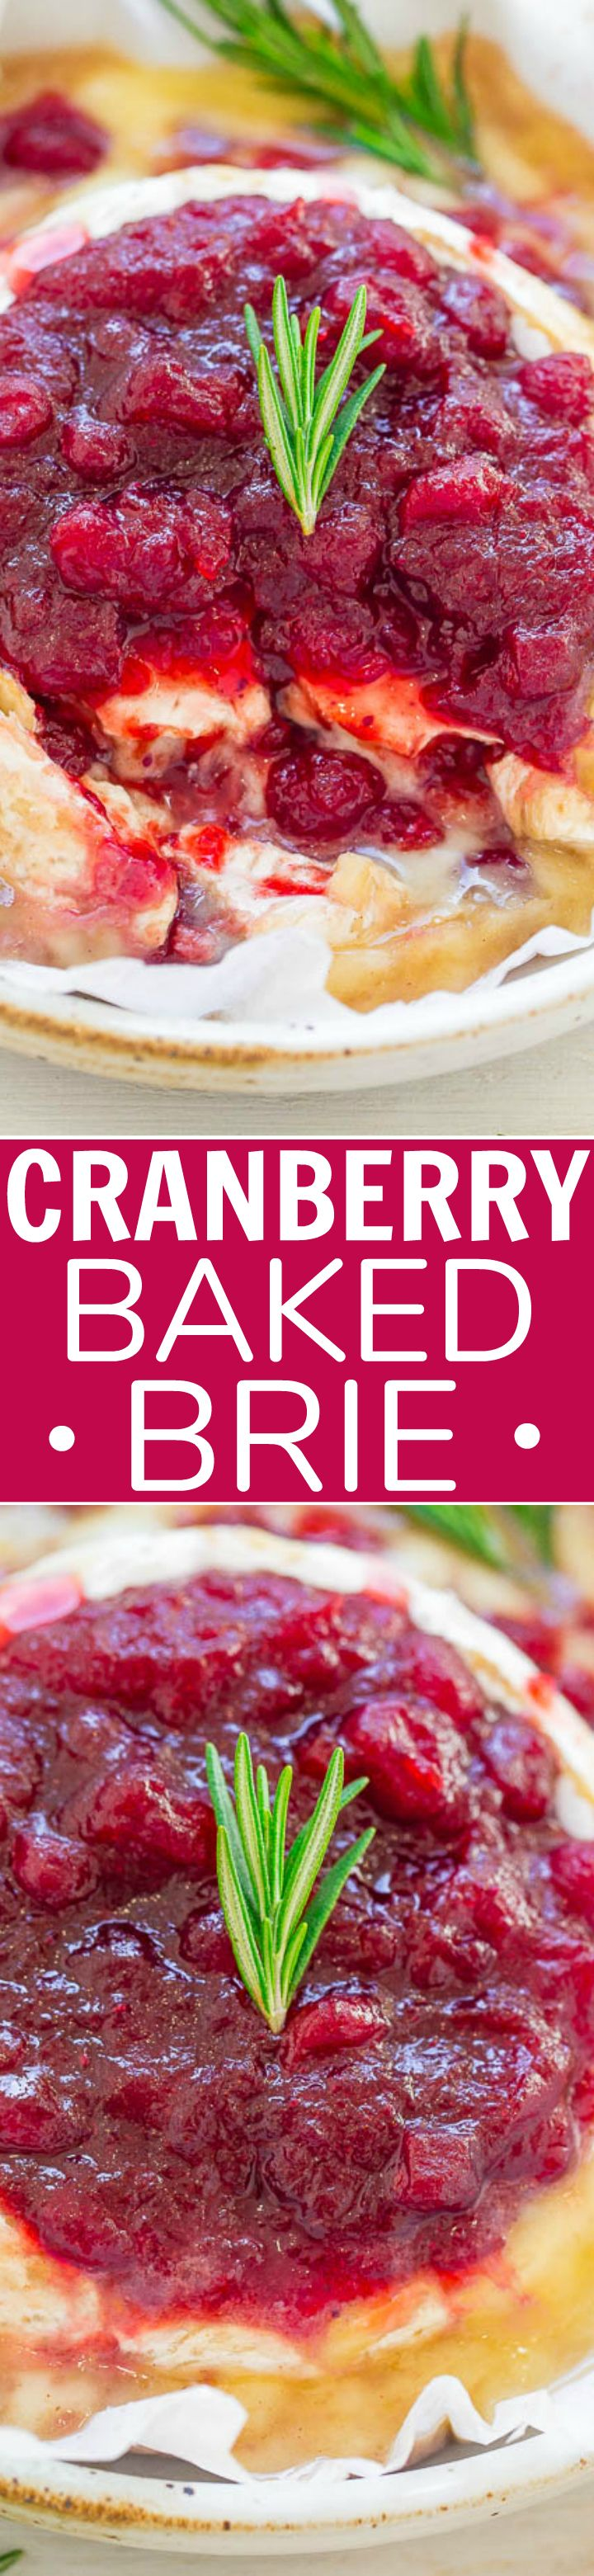 Cranberry Baked Brie (Easy Holiday Appetizer!) - Averie Cooks